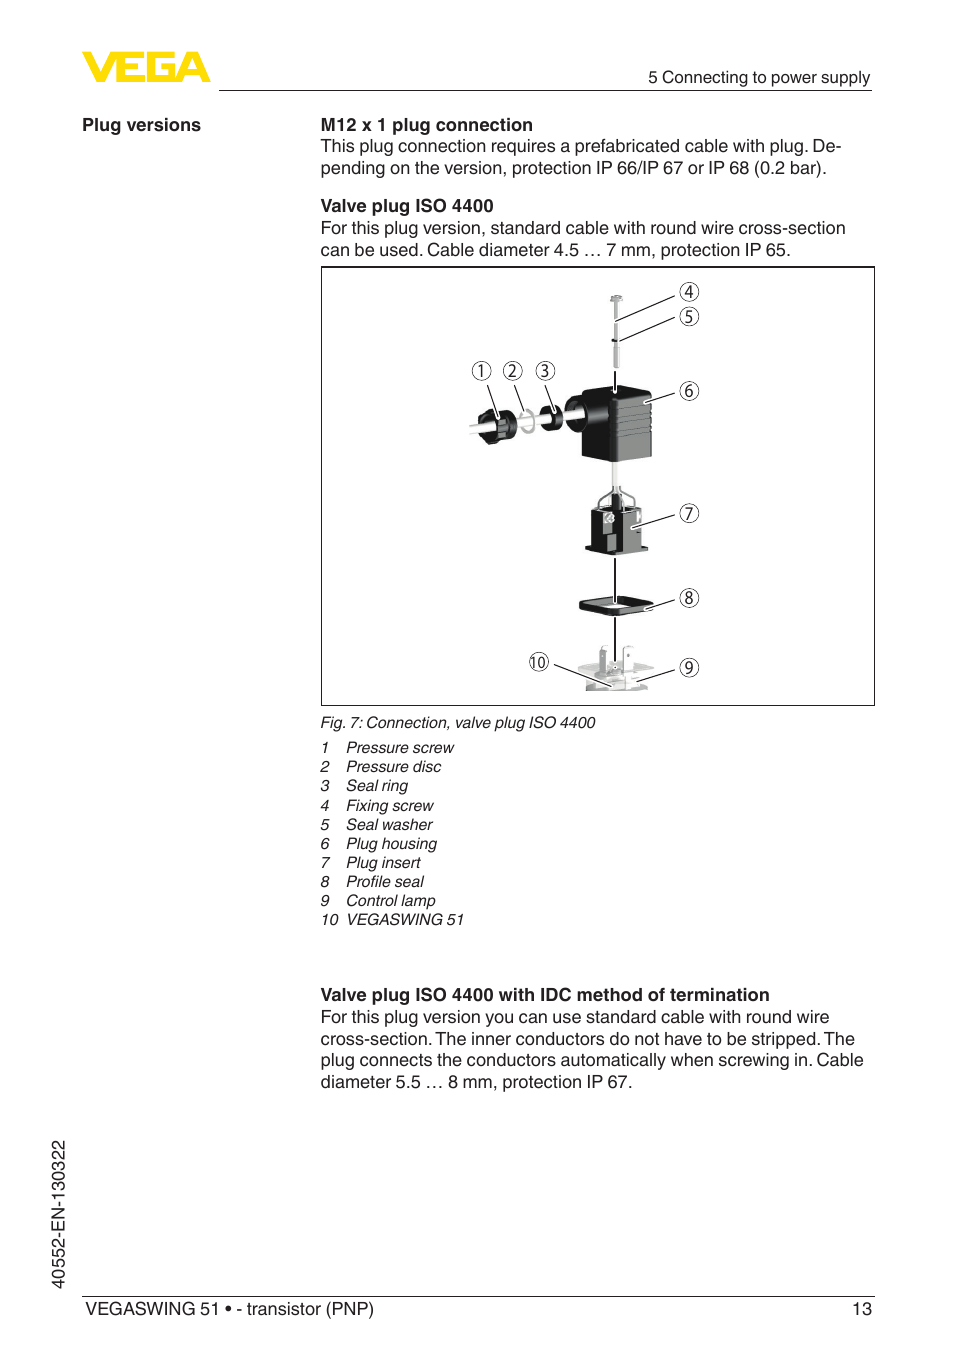 VEGA VEGASWING 51 - transistor (PNP) User Manual | Page 13 / 32